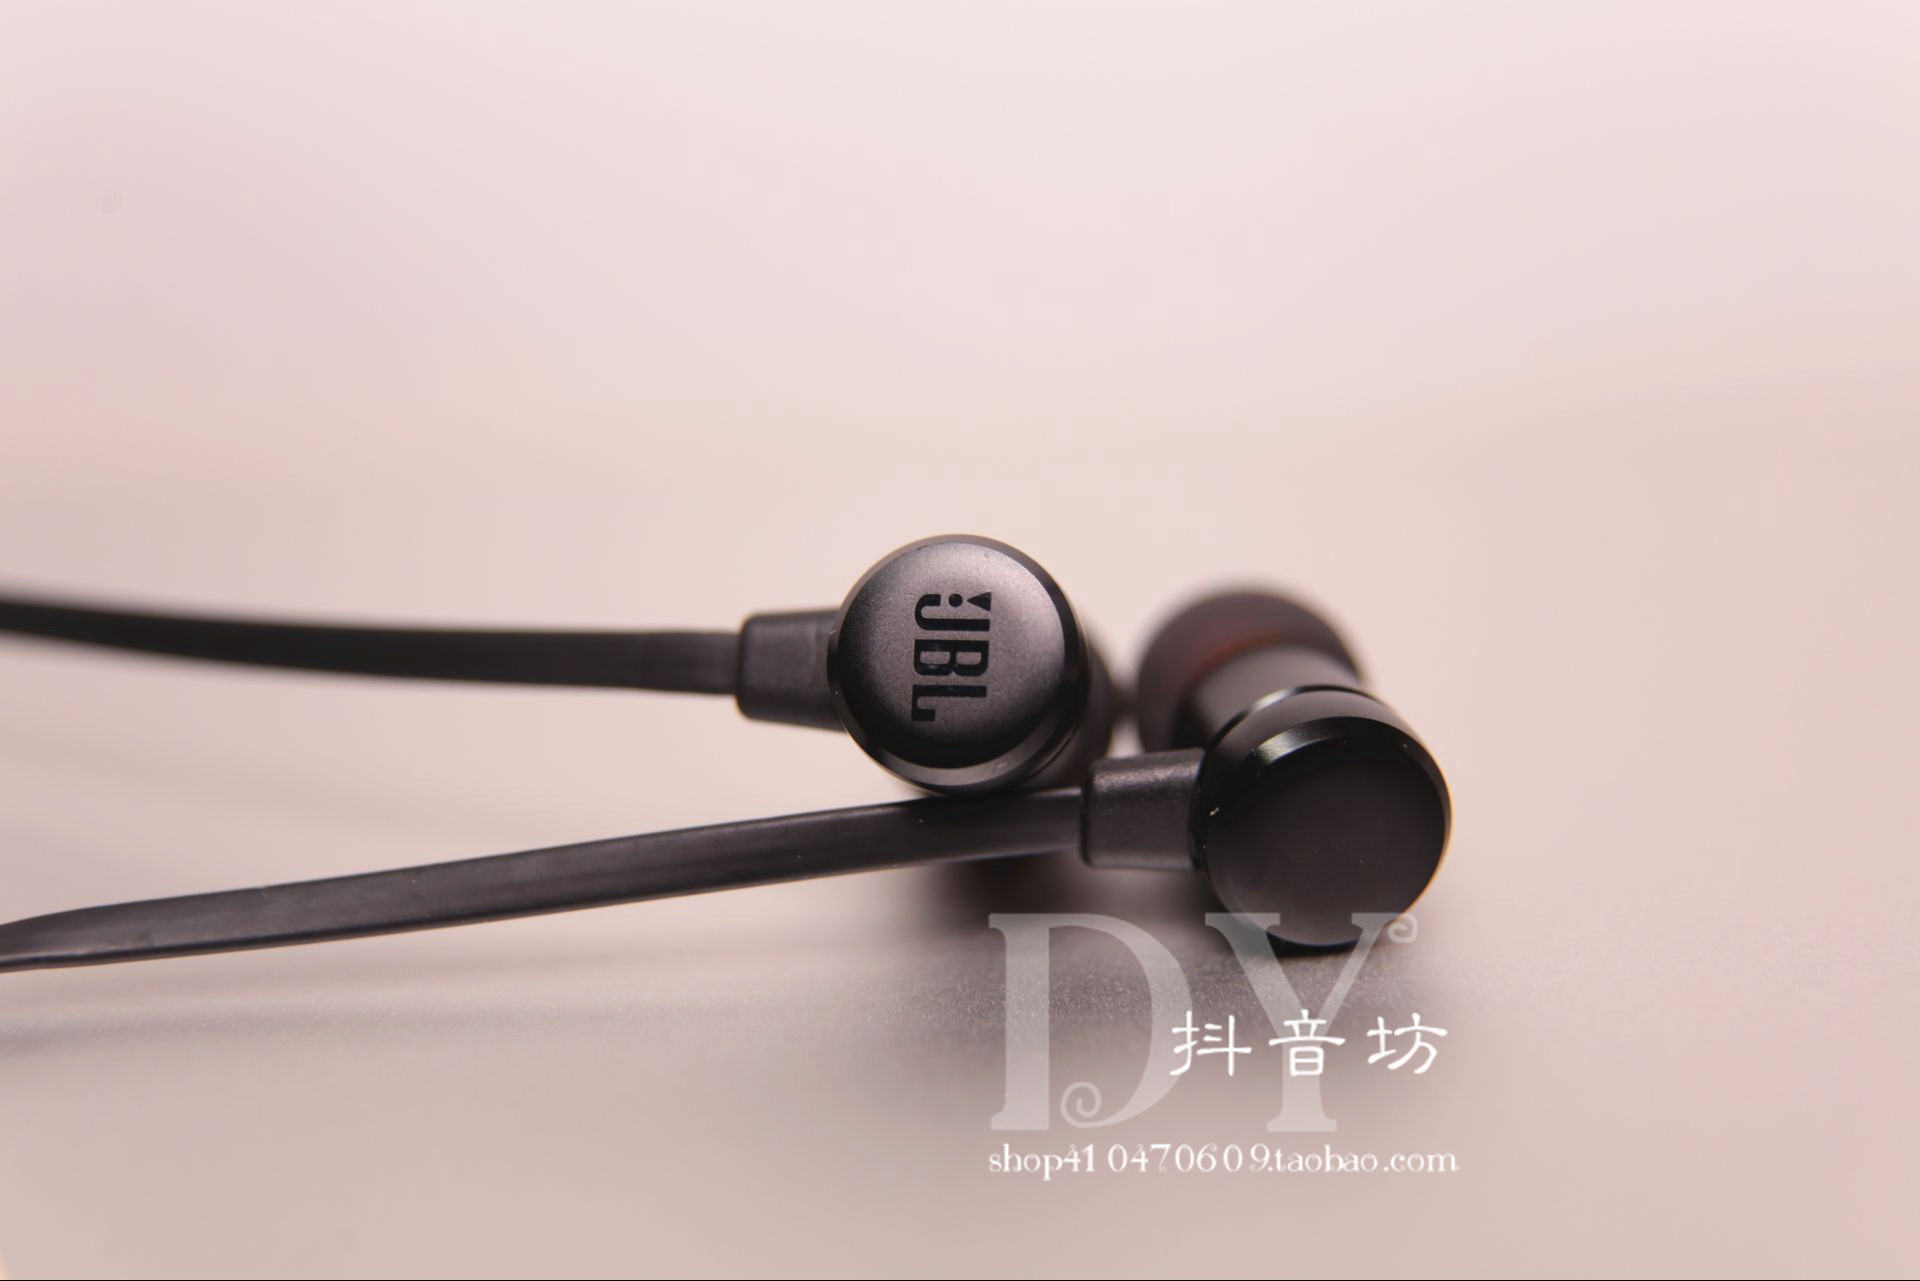 Jbl Original In Ear T280a T290 Subwoofer Mobile Phone Headset Noodle Earphone Gold Wire Remote Control